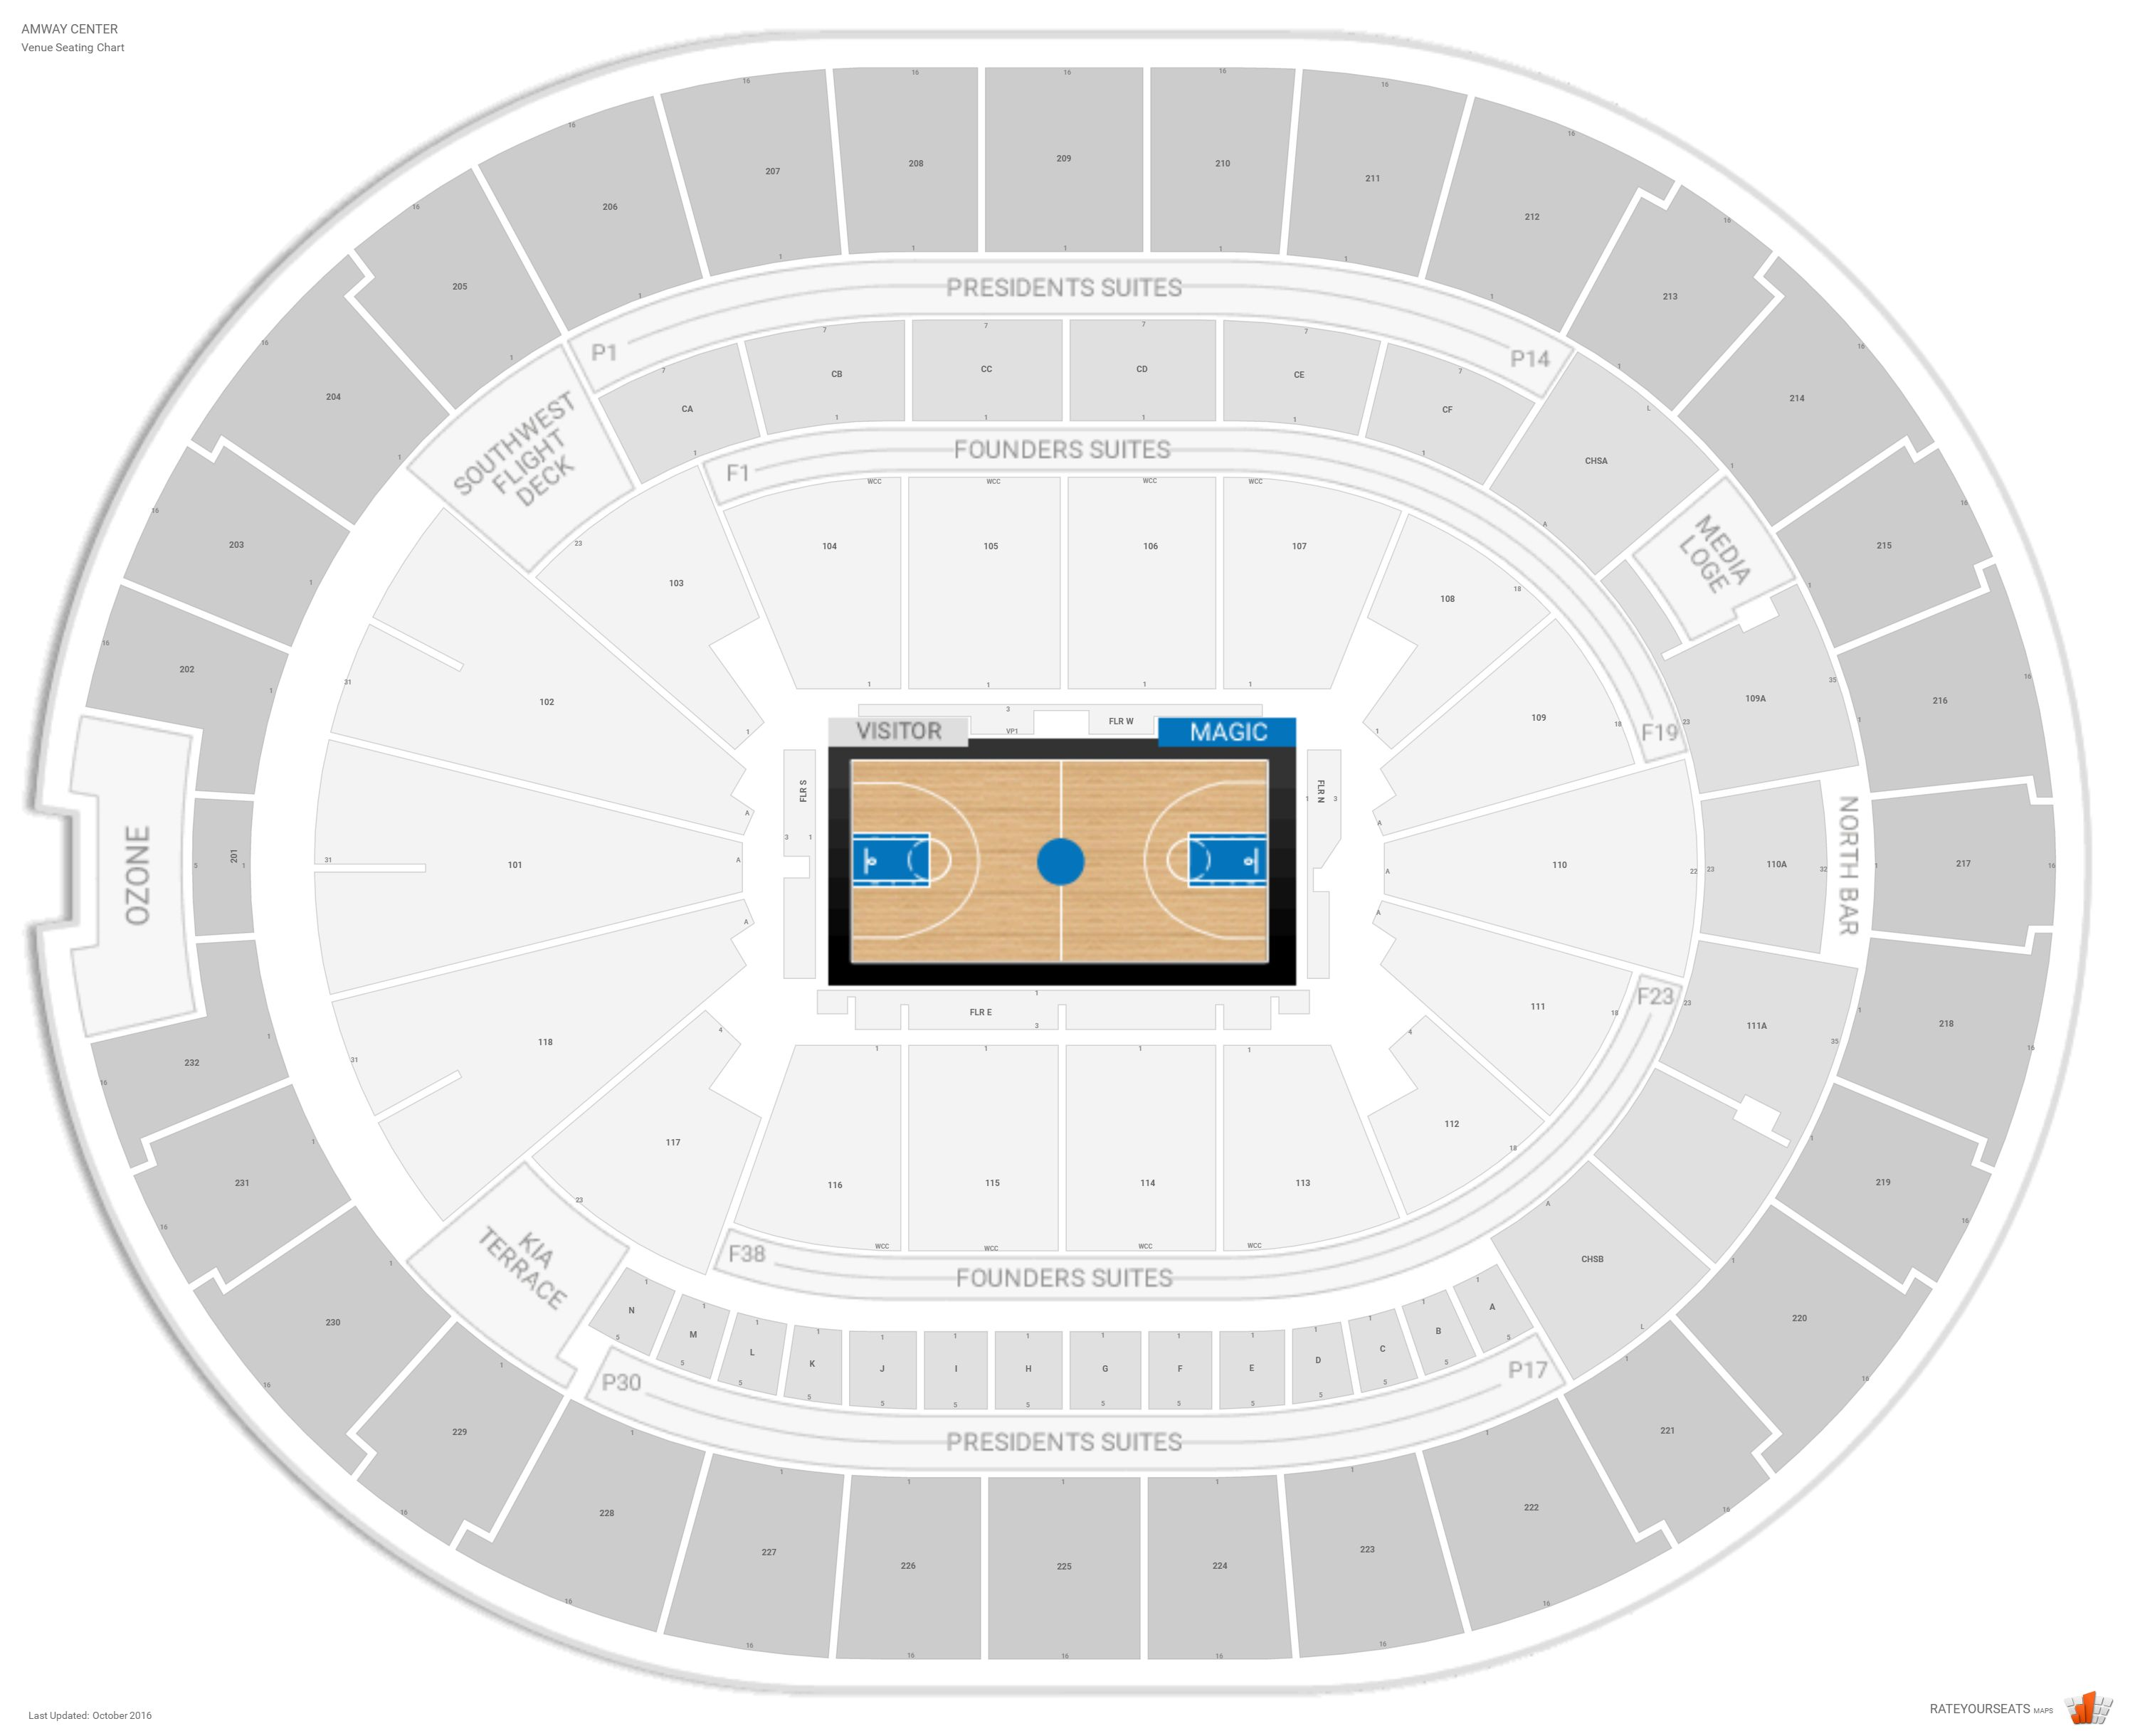 Orlando Magic Seating Guide Amway Center Rateyourseats Com